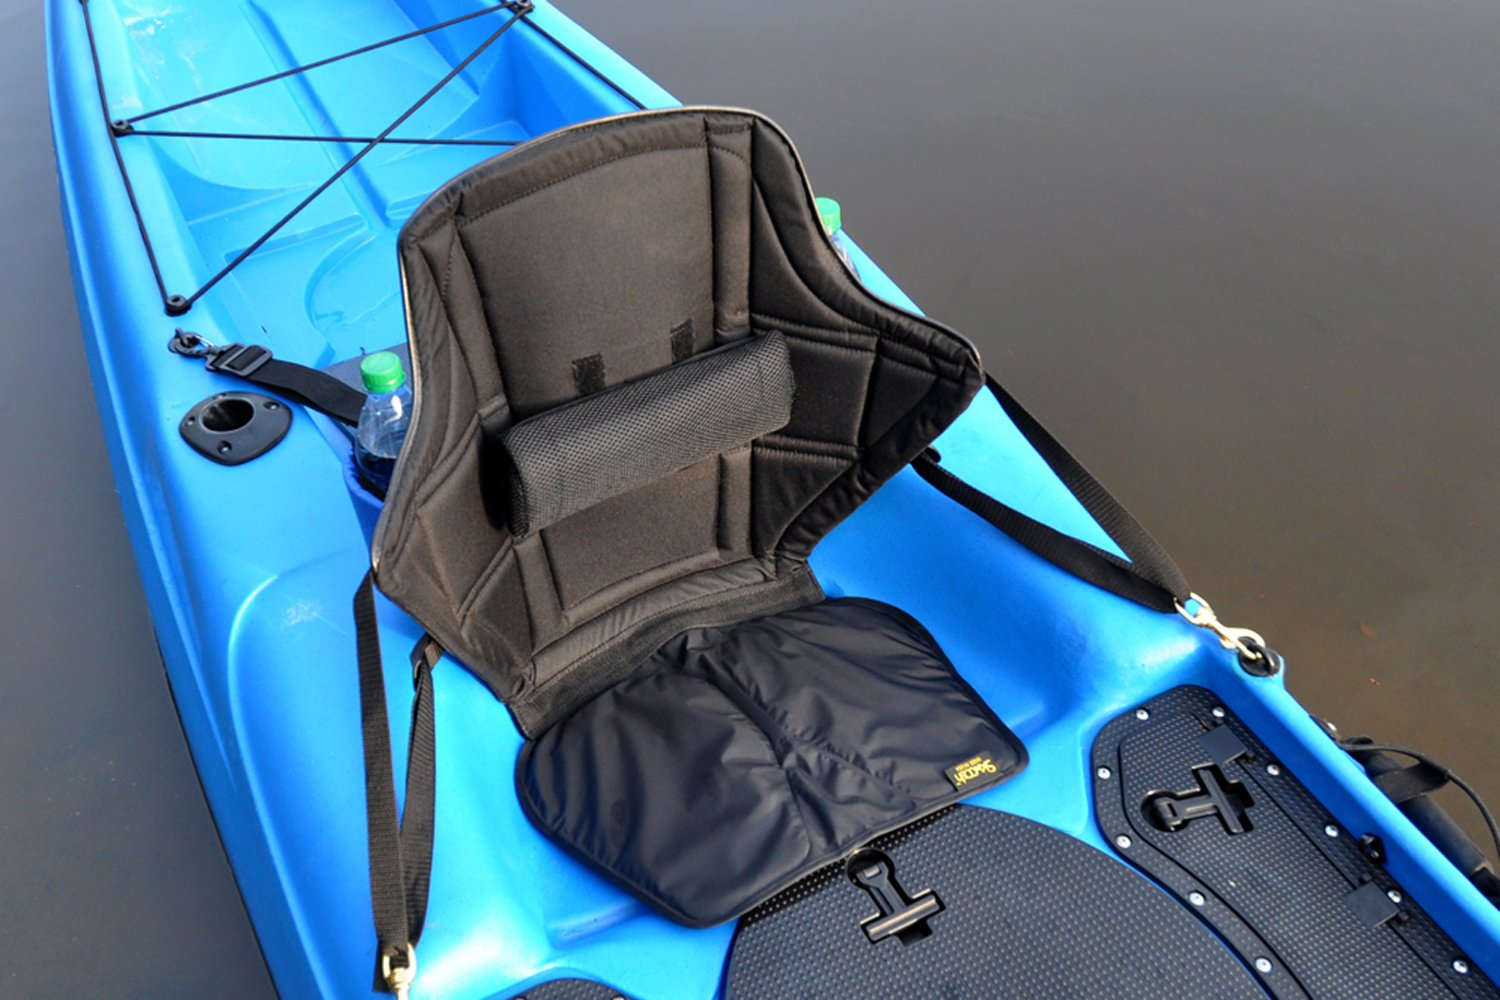 Expedition Kayak Seat 20'' High Back Support with Lumbar Roll and nylon gel seat bottom for kayaking comfort